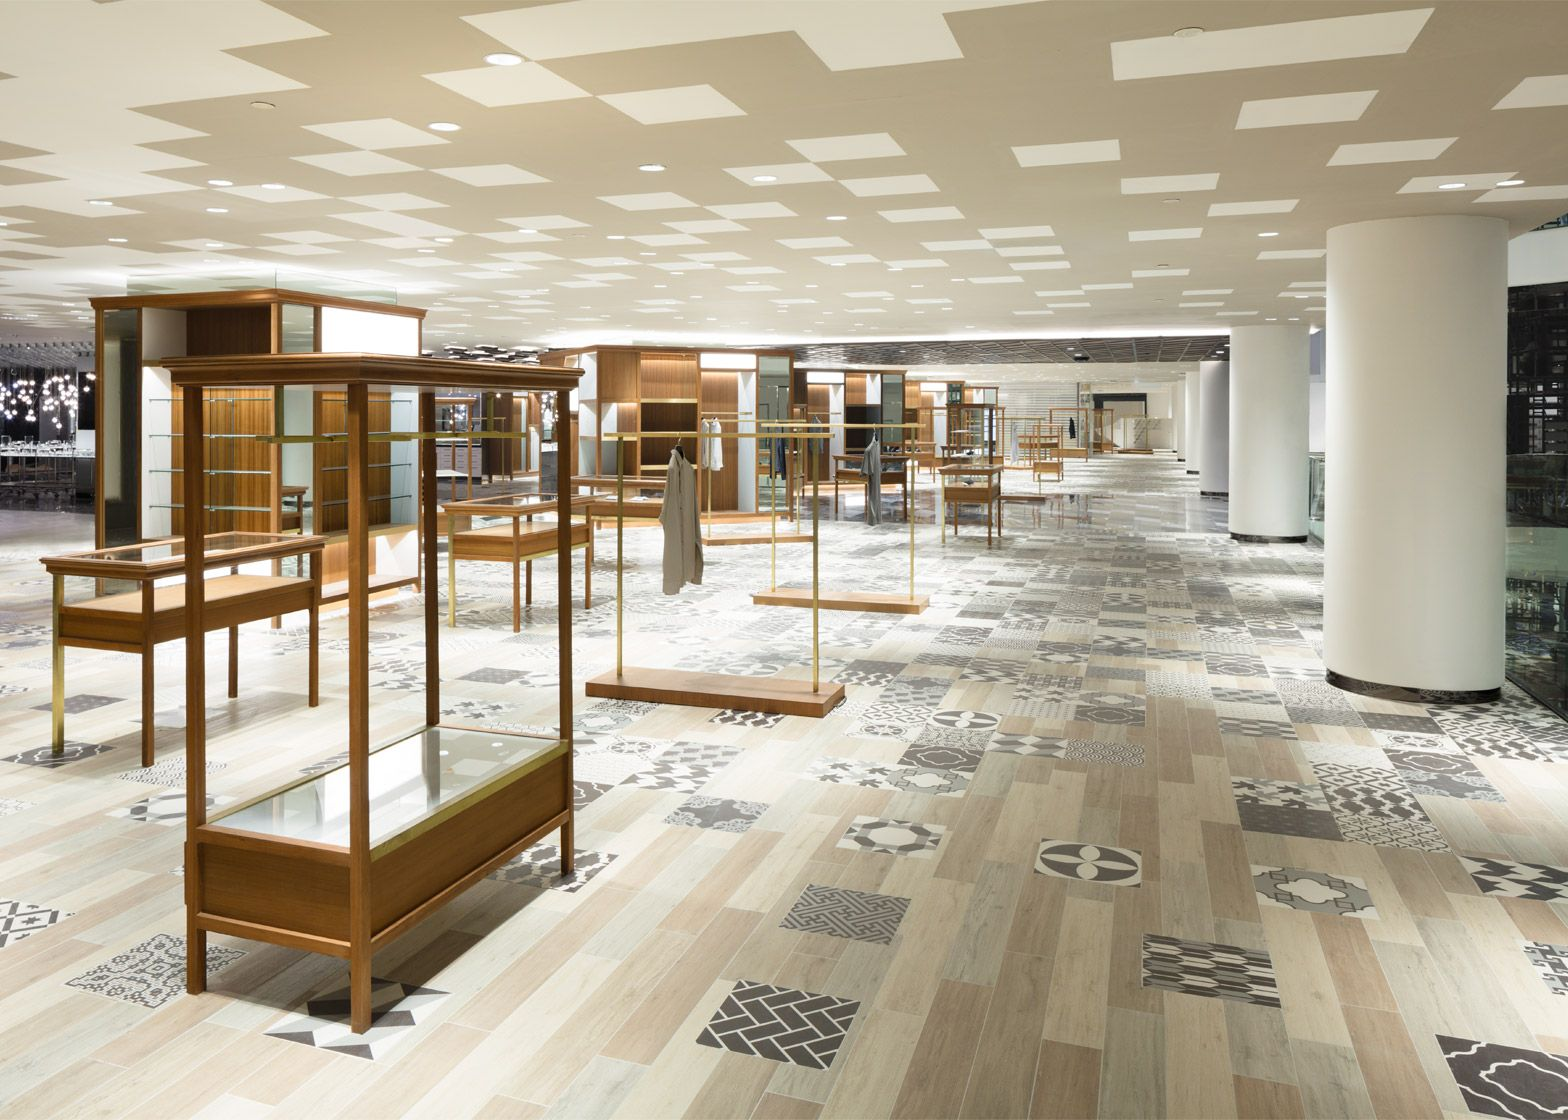 Nendo has transformed shopping space in Bangkok into Lifestyle Labs 29